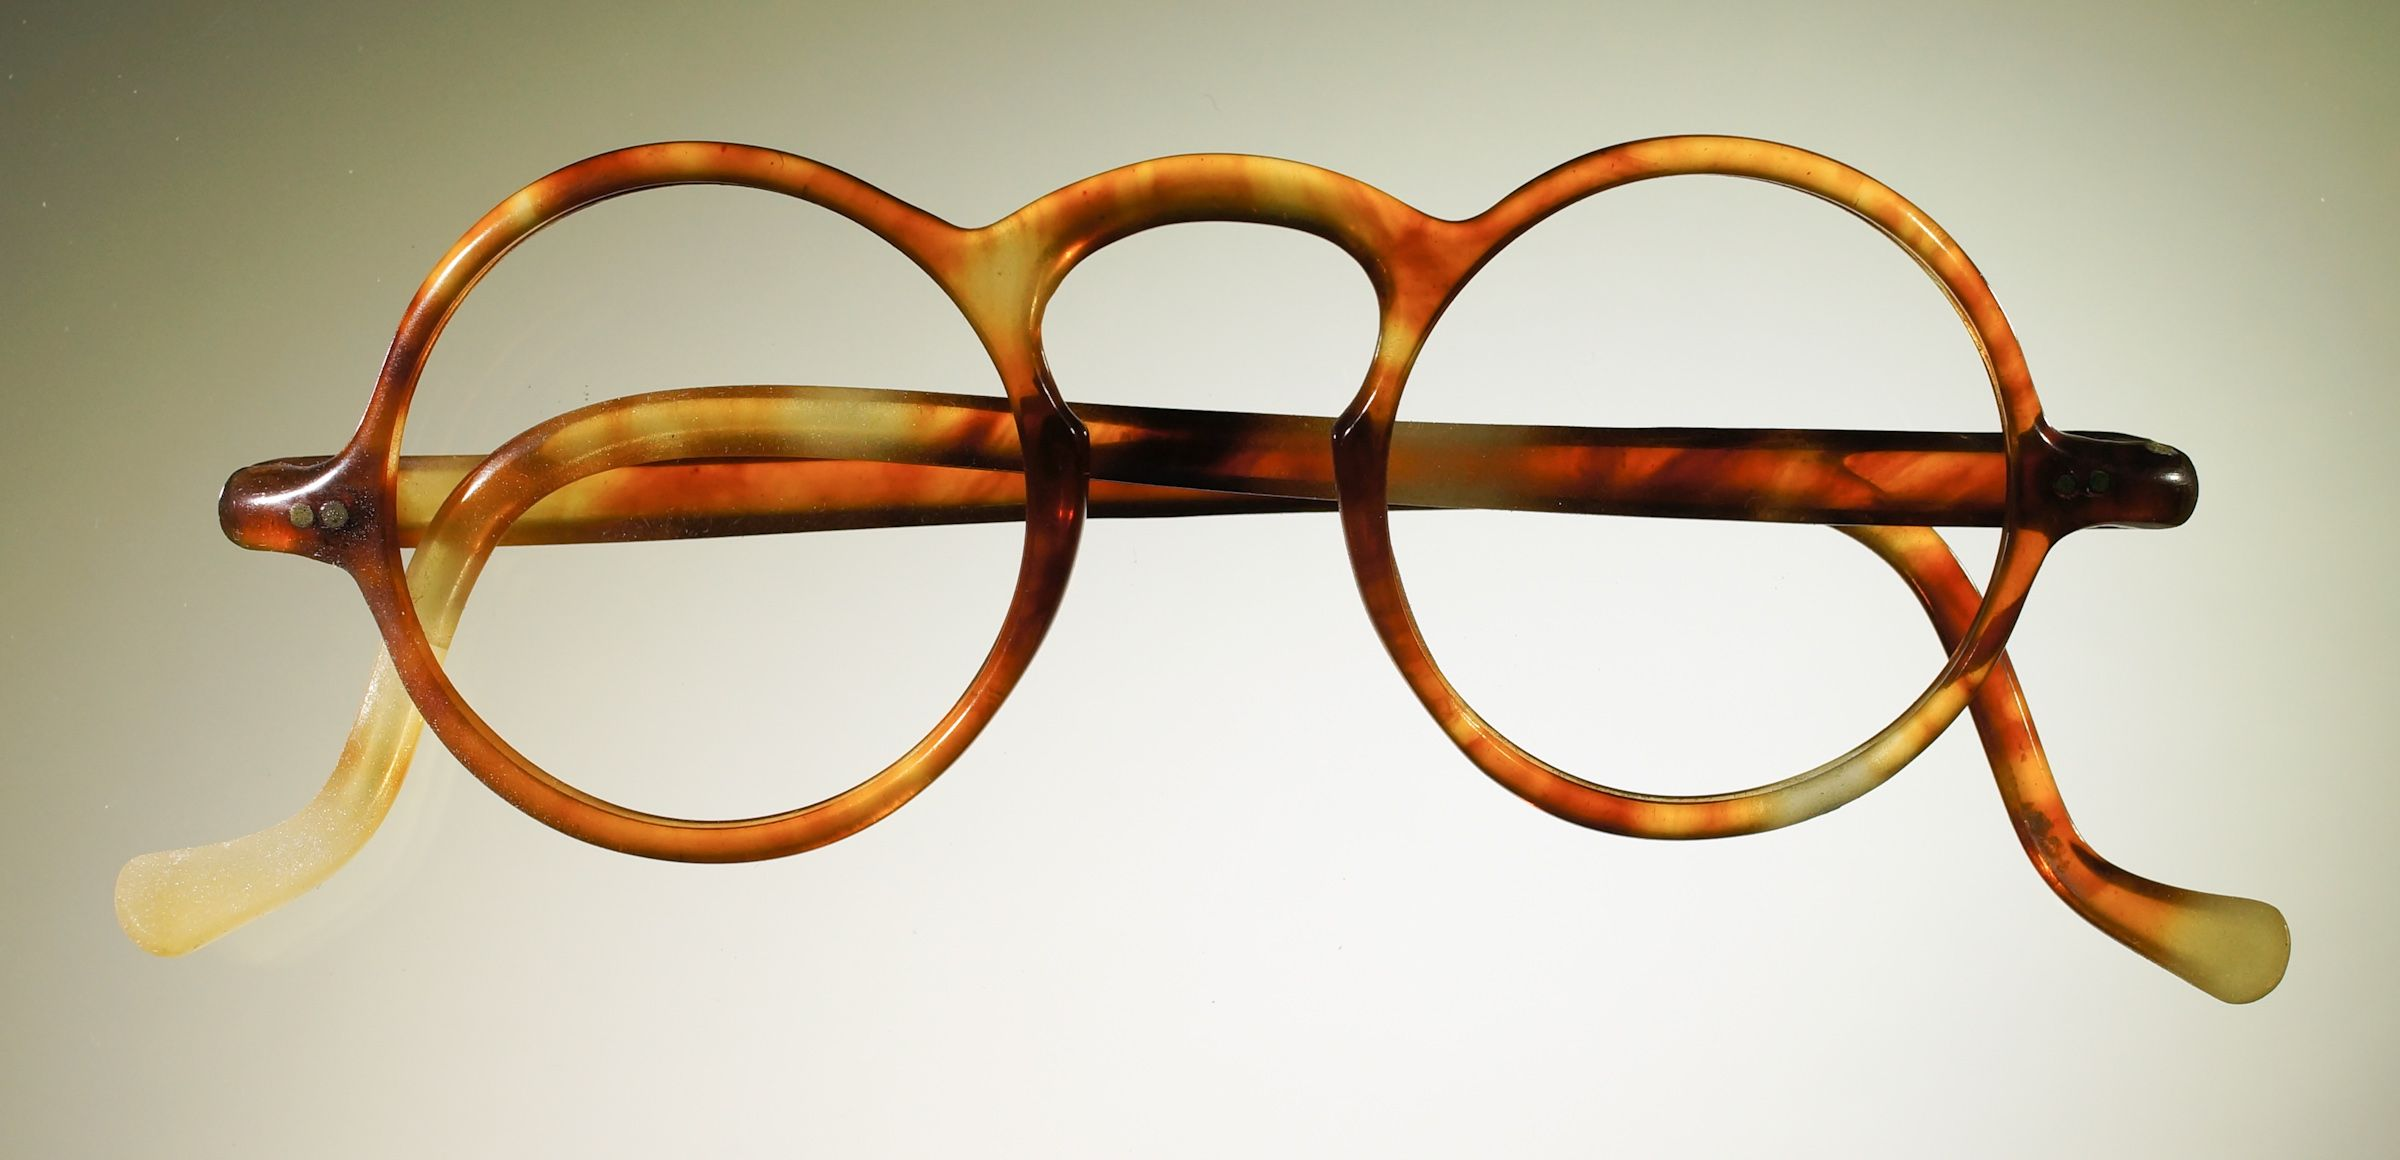 Celluloid Eyeglass Frames From The 1930 S Eyeglasses Etc